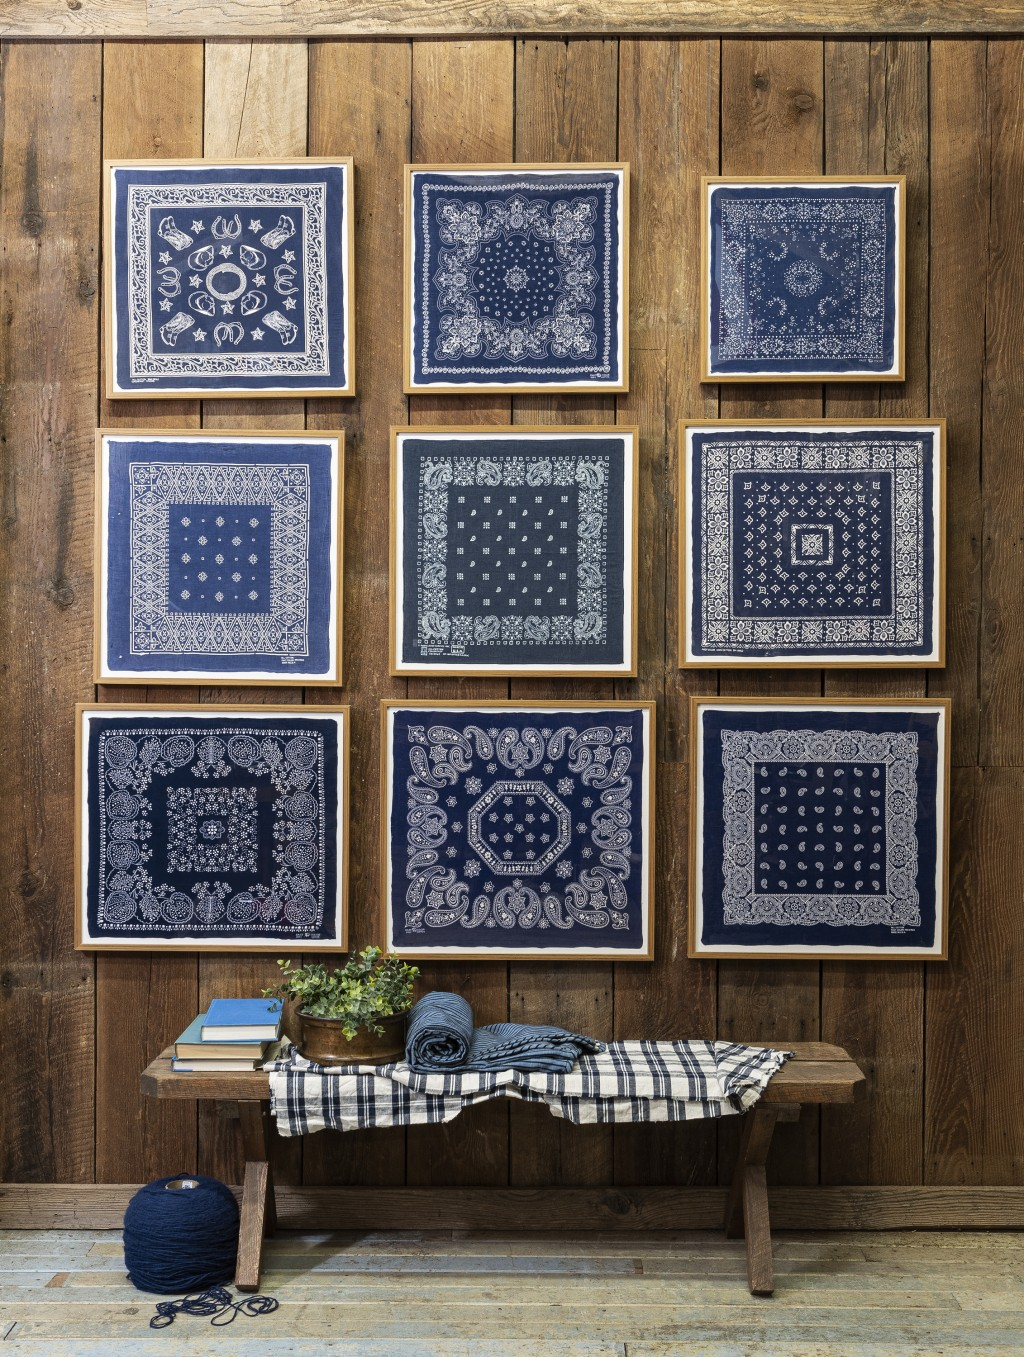 This image released by Portland Oregon-based interior designer Max Humphrey shows framed bandanas that serve as decorative wall art. (Christopher Dibb...